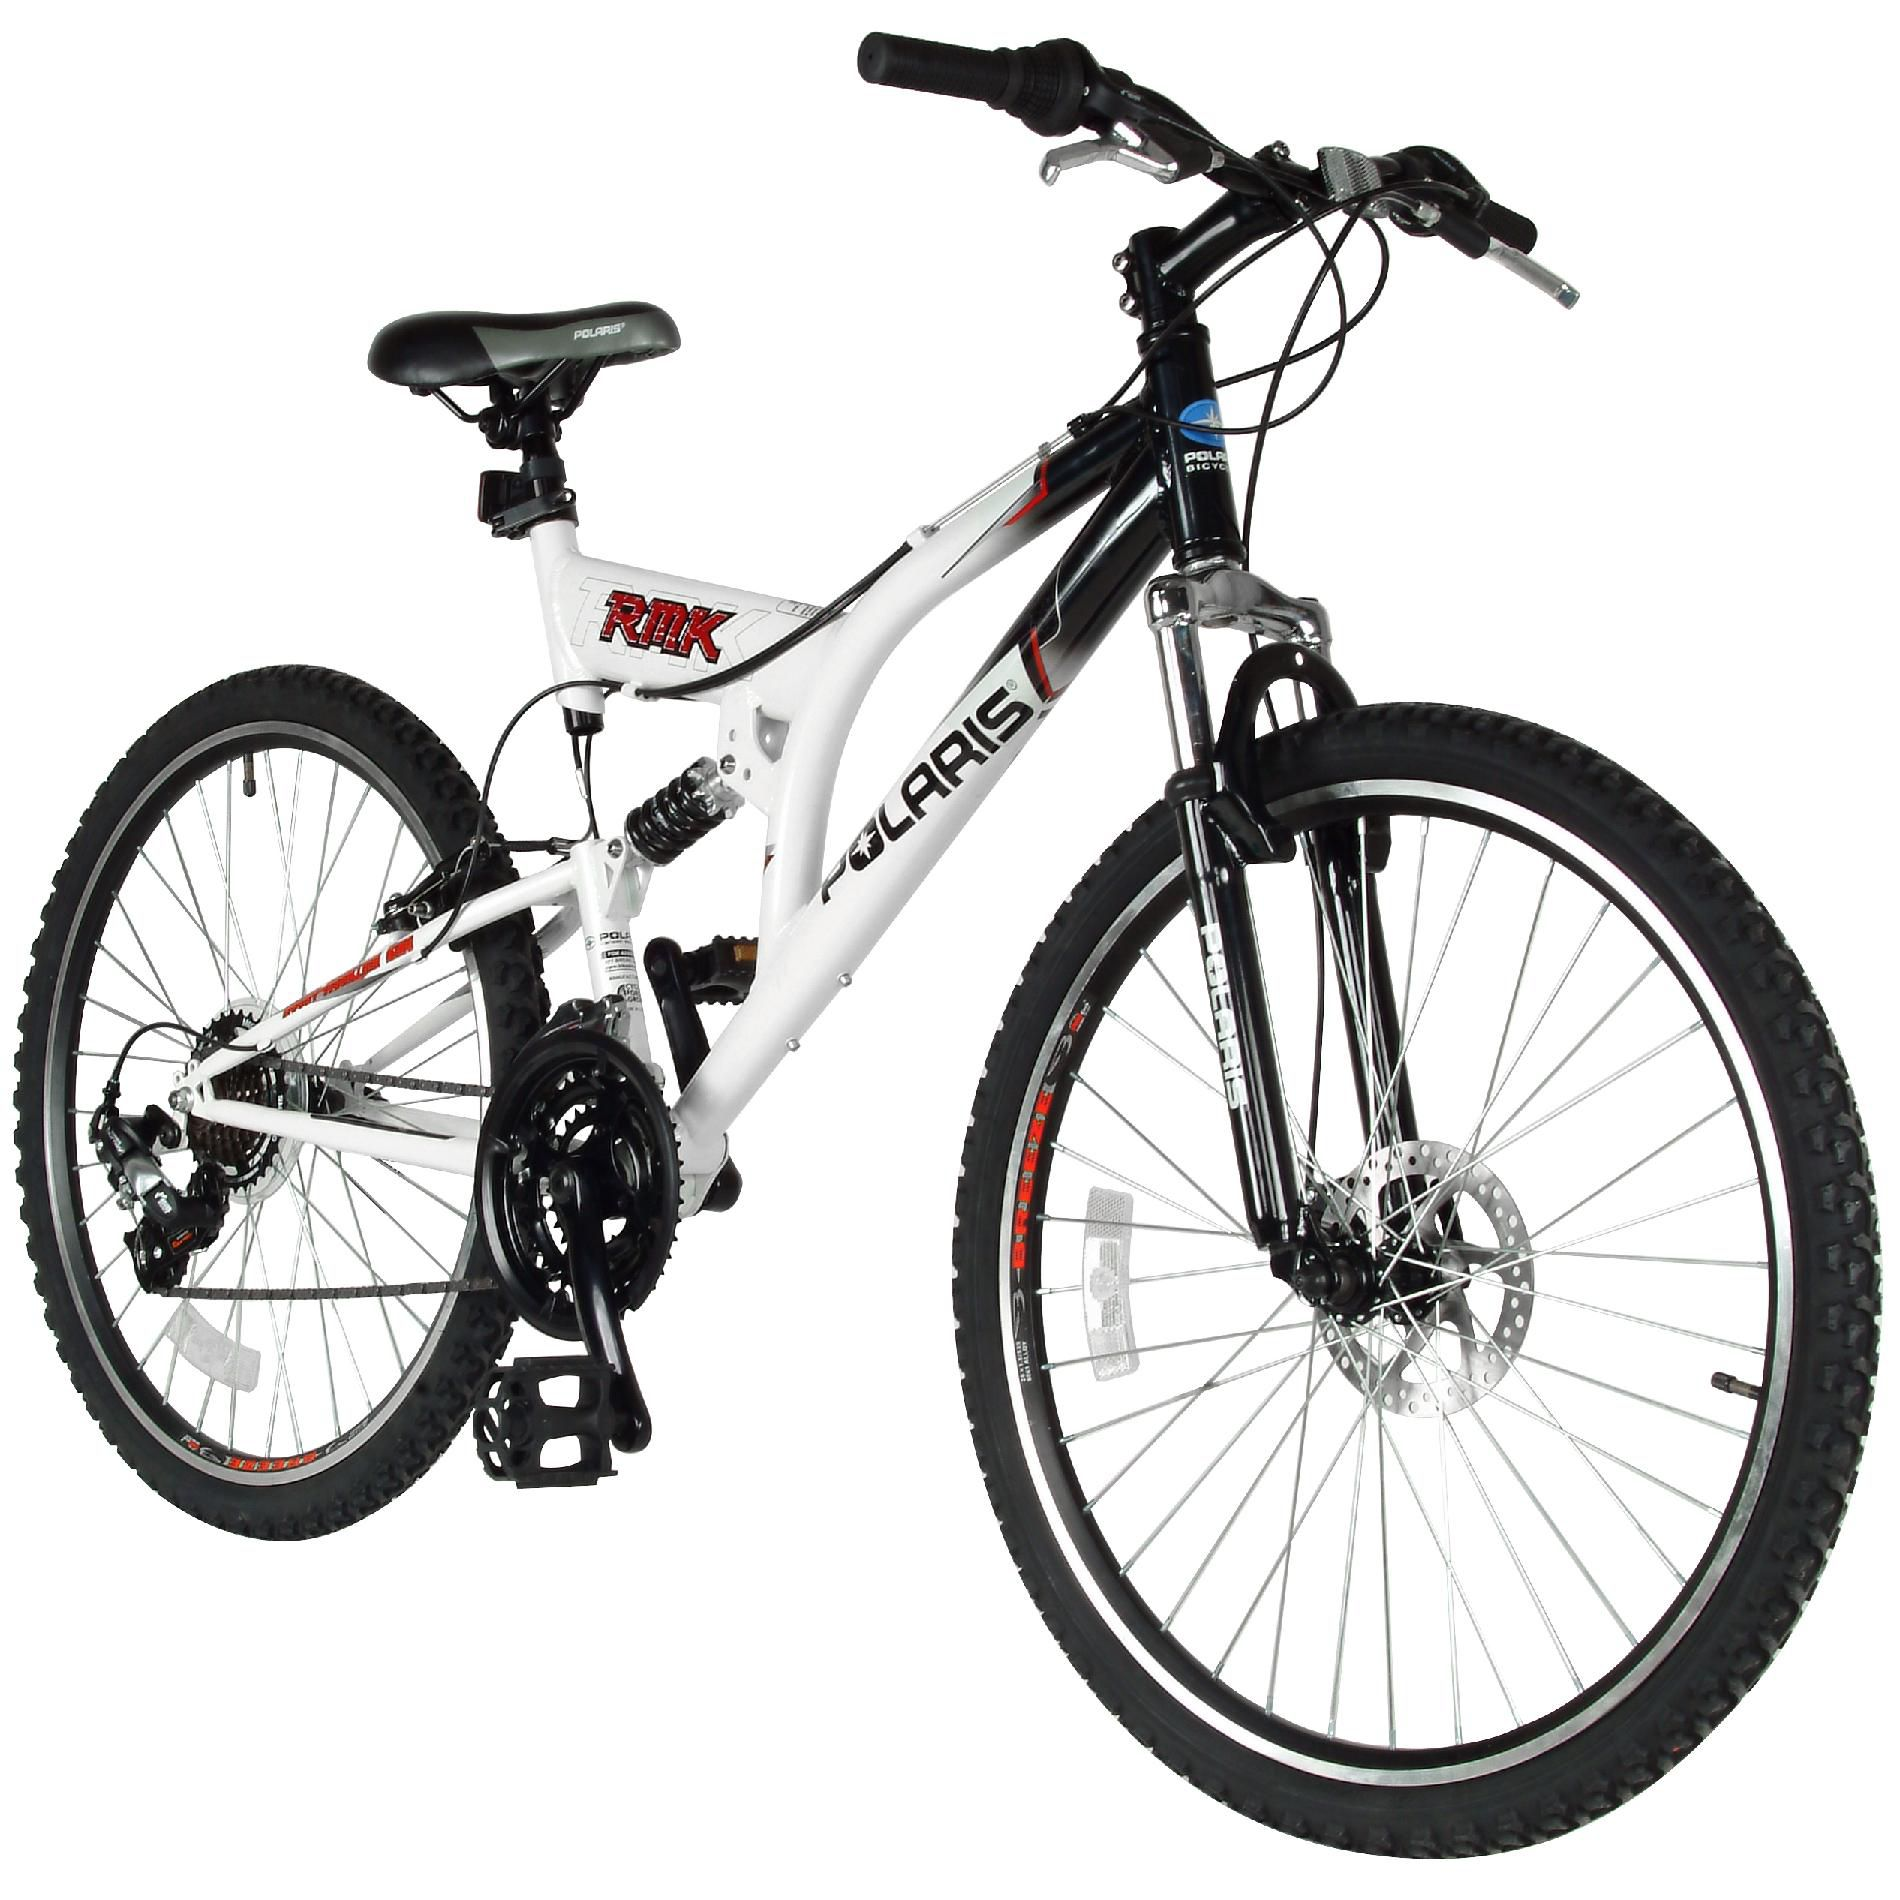 "Polaris RMK 26"" Dual Suspension Mens Mountain Bike"